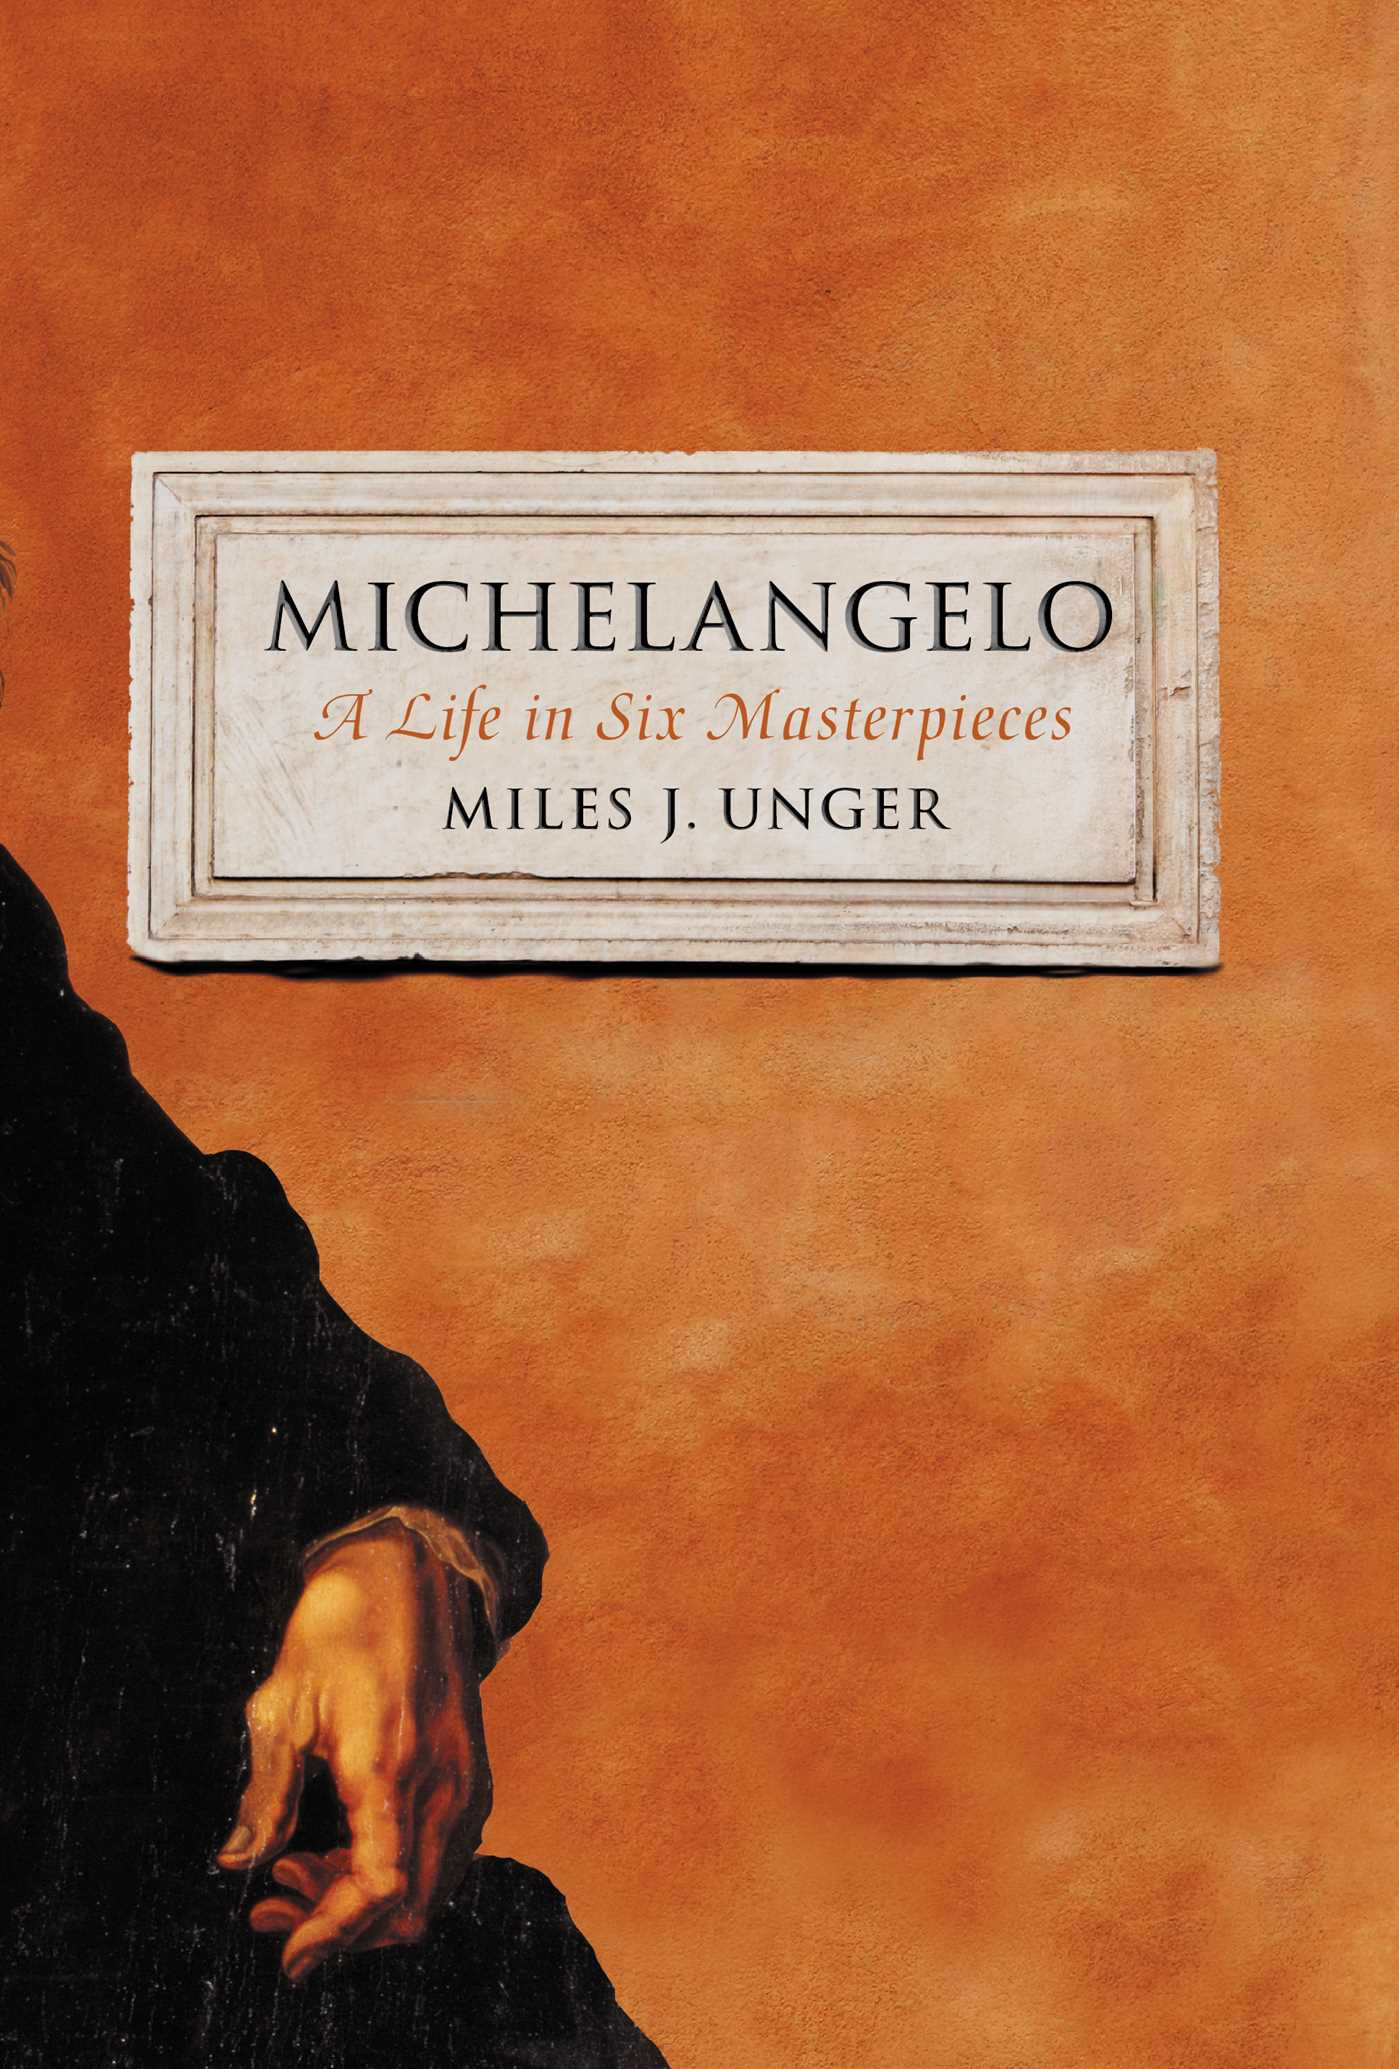 Michelangelo-9781451678741_hr